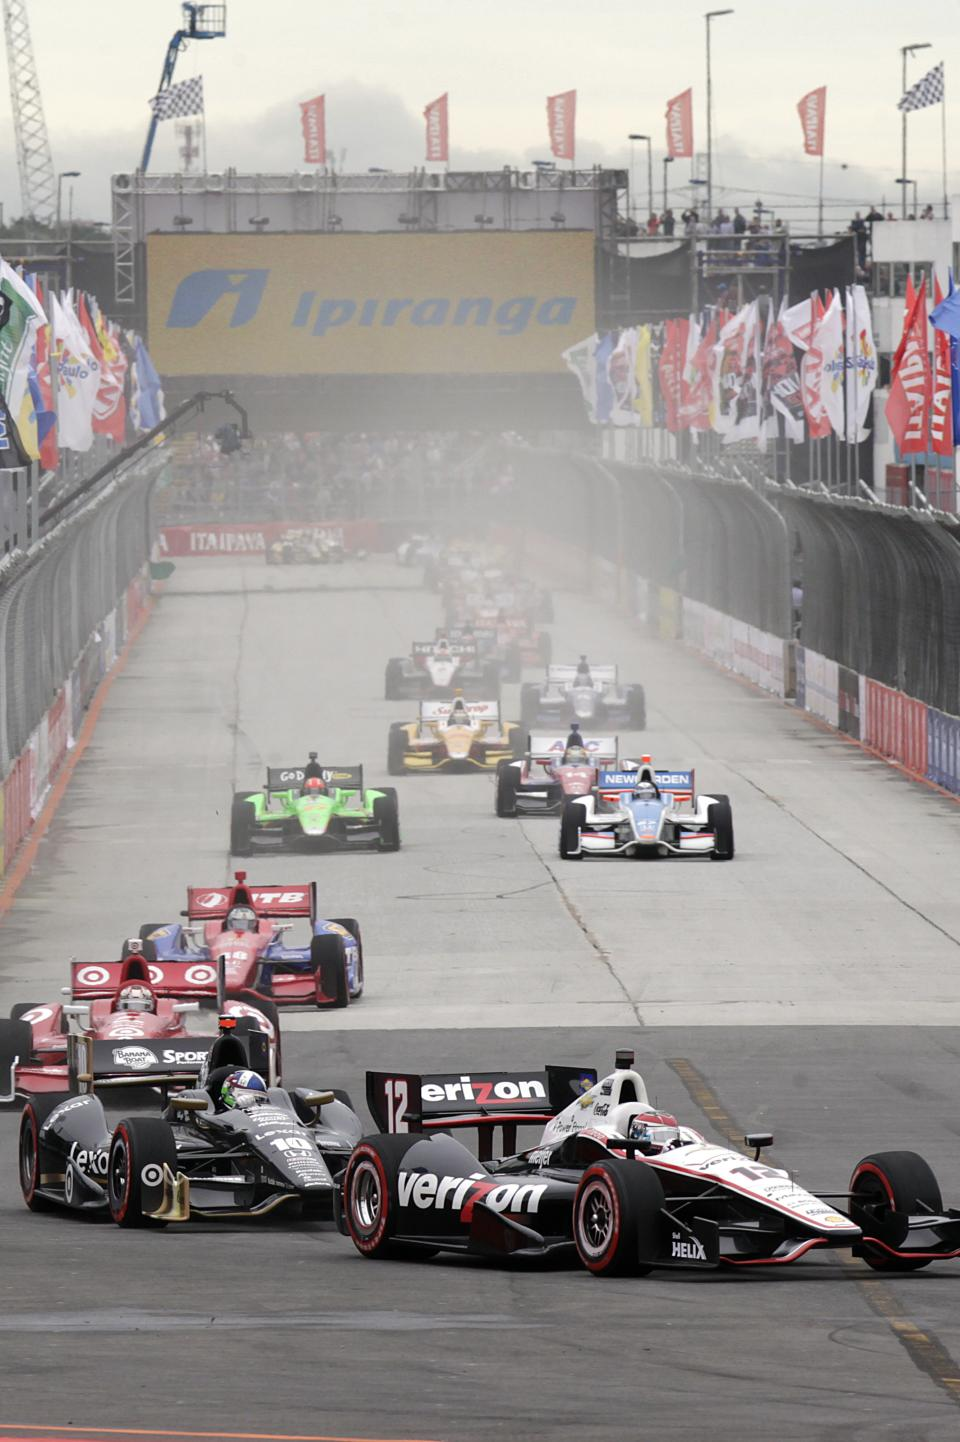 IndyCar driver Will Power, of Australia, leads the pack during the IndyCar Sao Paulo 300, in Sao Paulo, Brazil, Sunday, April 29, 2012. (AP Photo/Andre Penner)